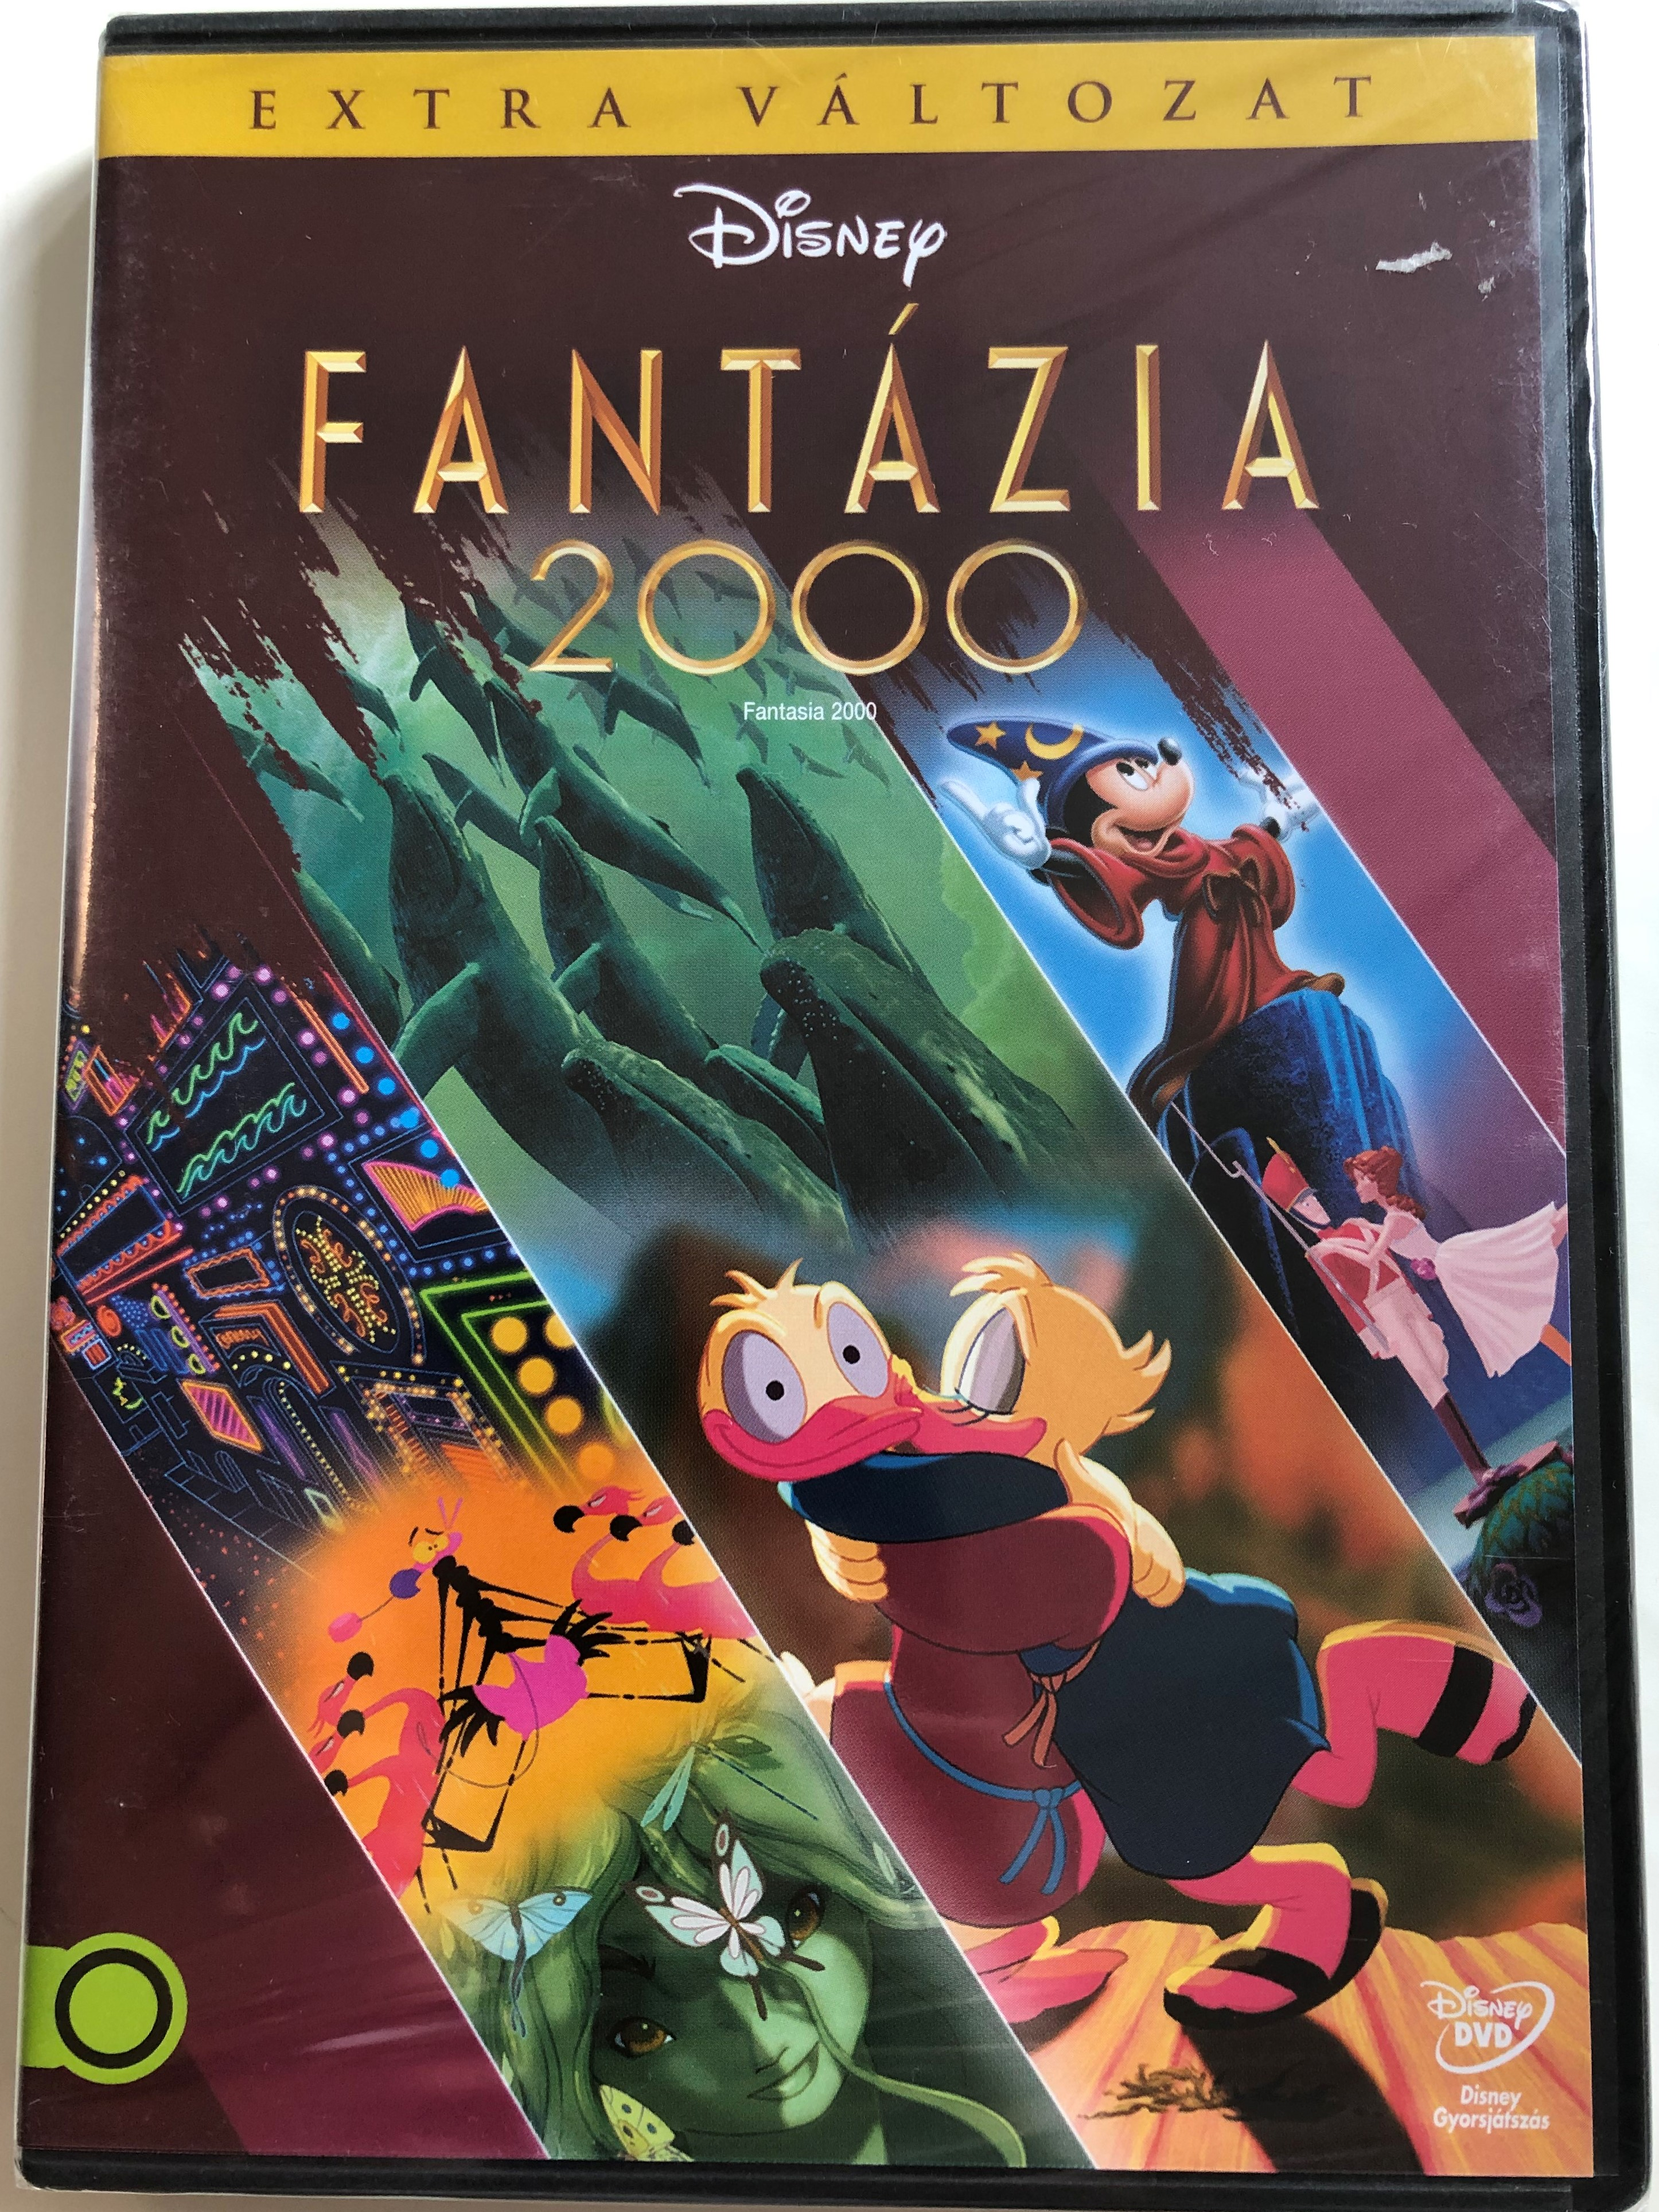 fantasia-2000-dvd-1999-fant-zia-2000-directed-by-don-hahn-1.jpg